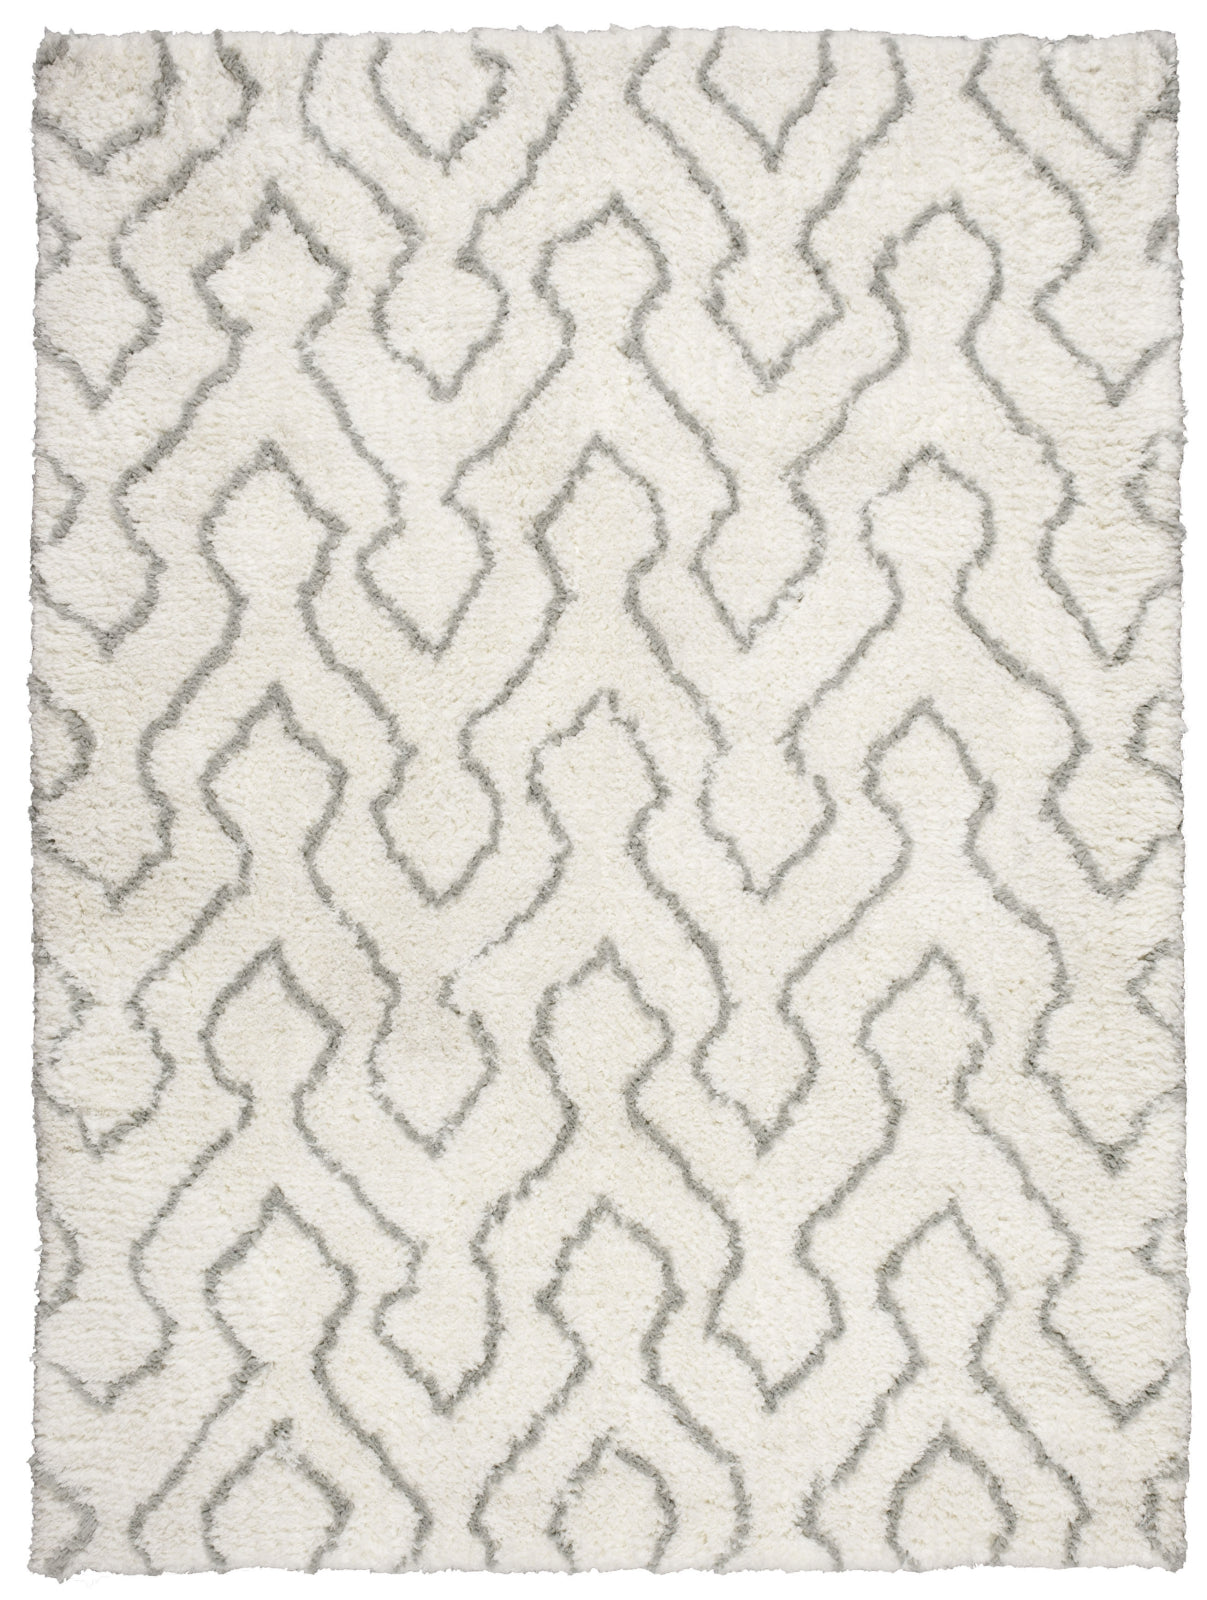 Nourison Galway GLW03 Ivory Sage Area Rug main image